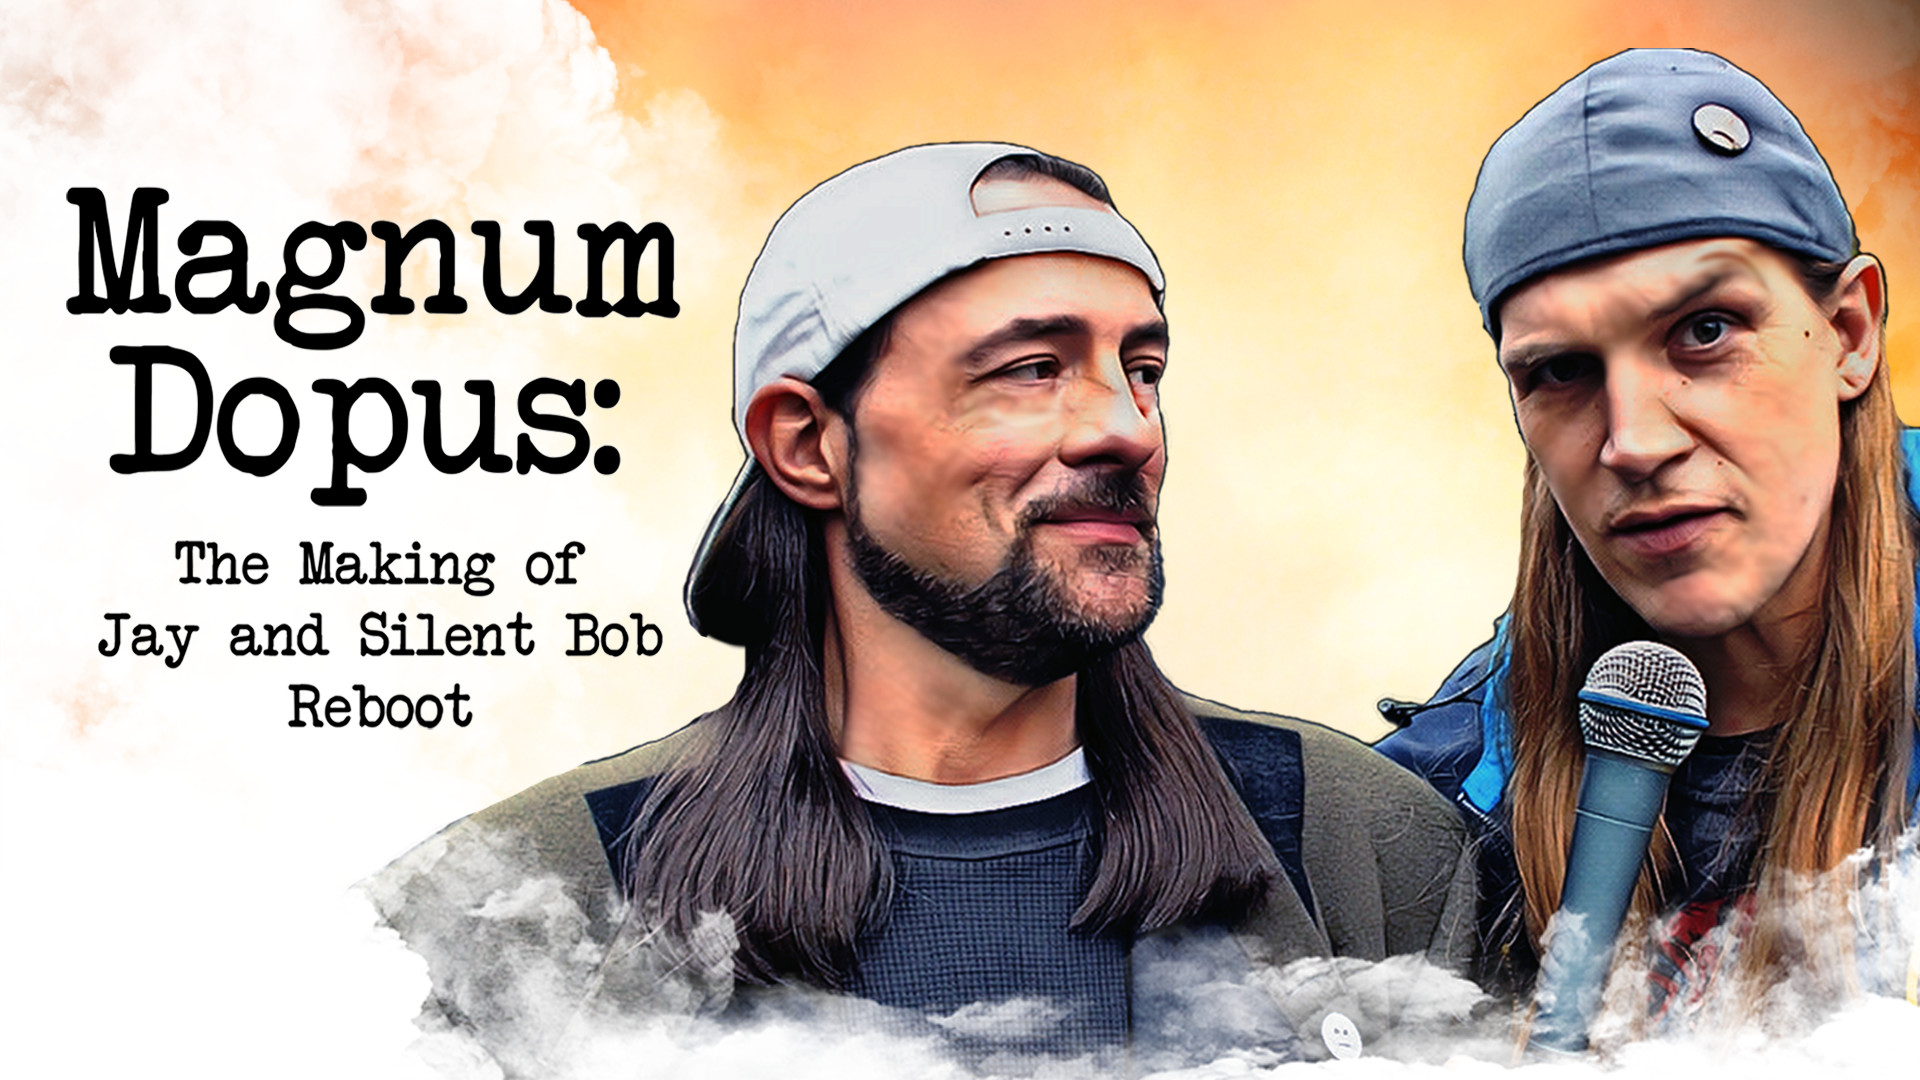 Magnum Dopus - The Making of Jay and Silent Bob Reboot